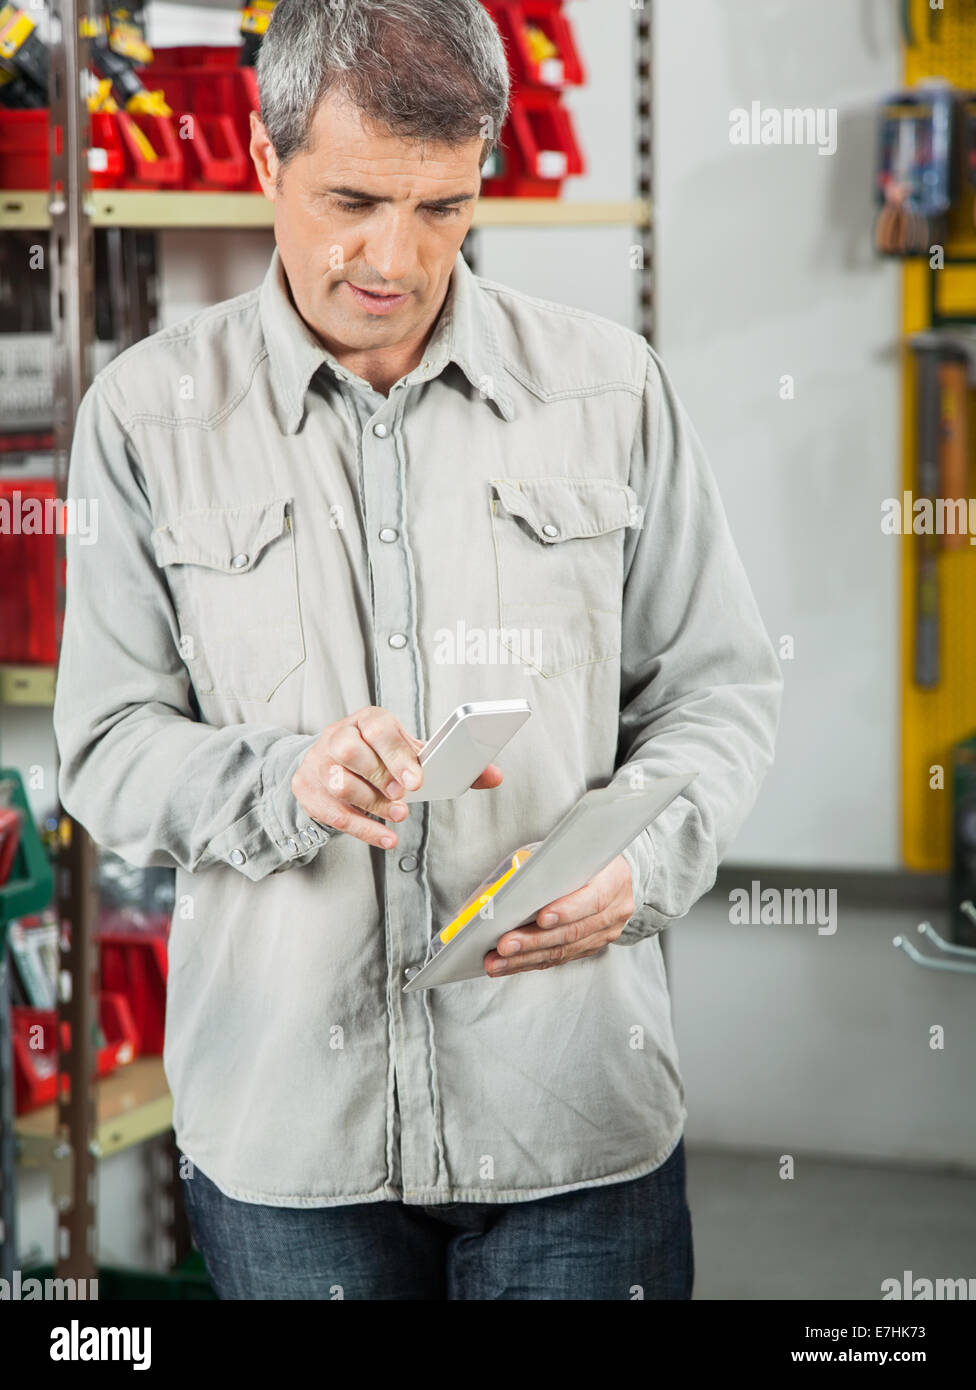 Customer Scanning Tool Packet Through Cellphone - Stock Image